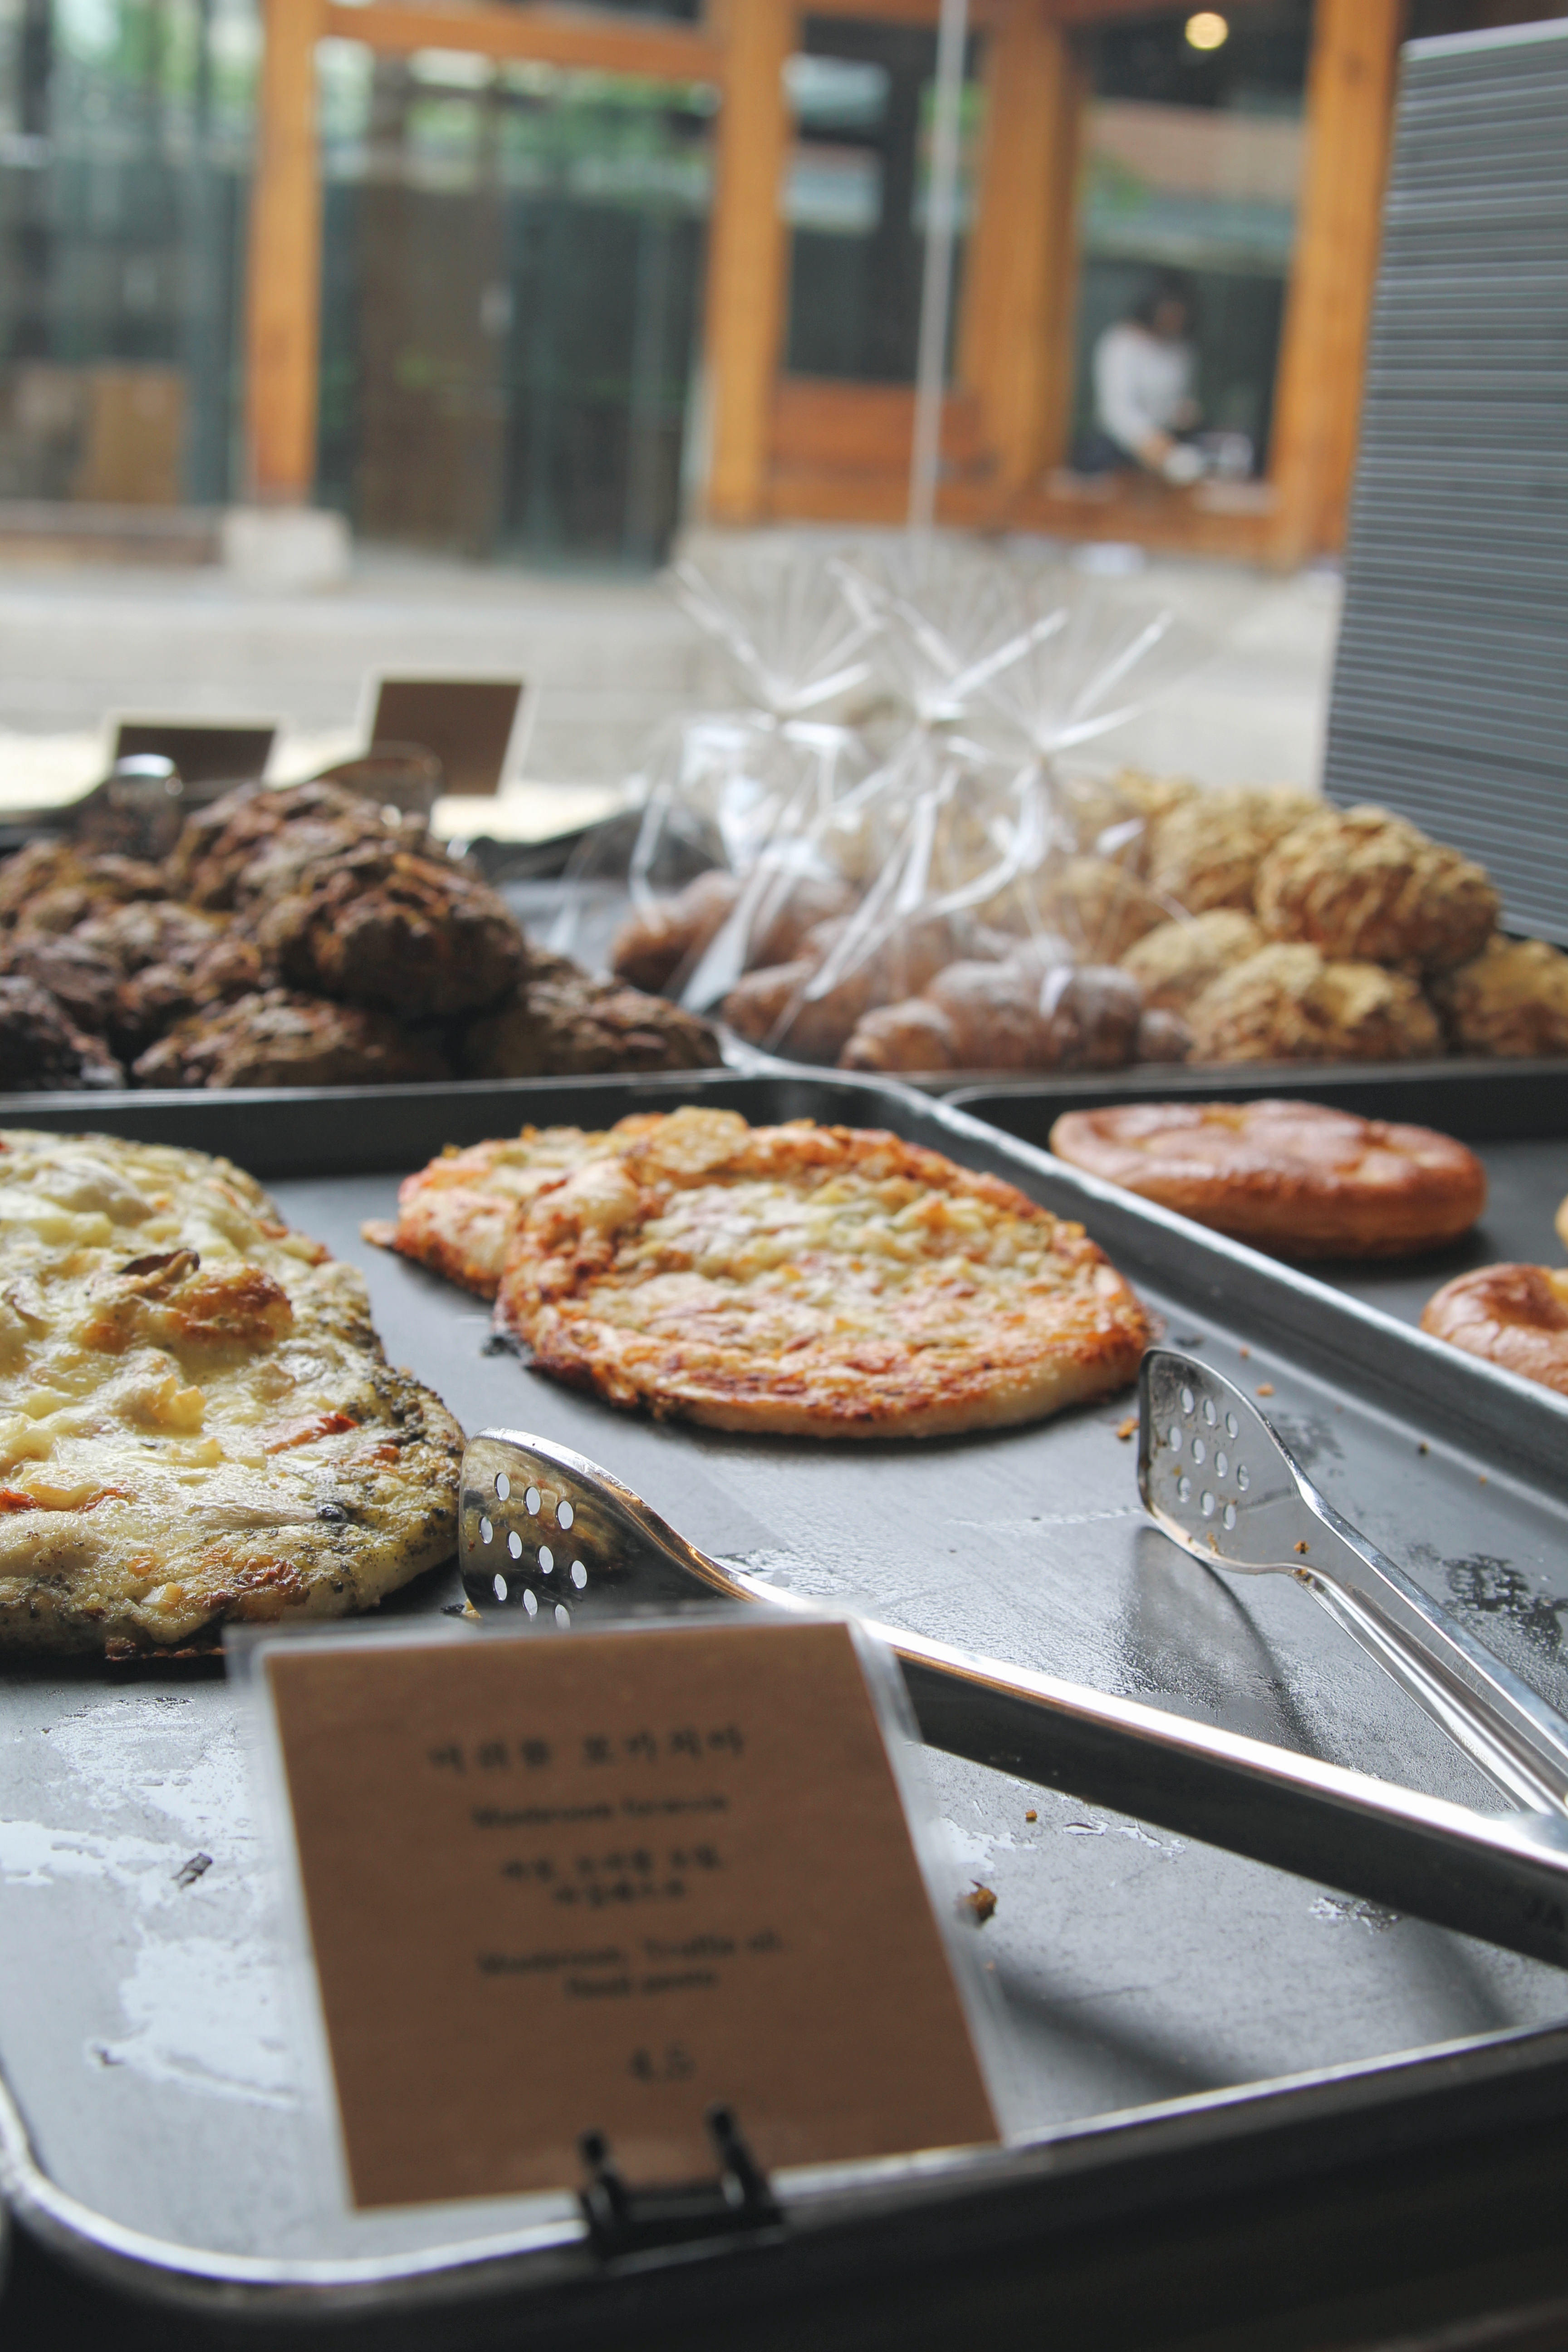 Pastries at Onion. This time in focus: the focaccia.